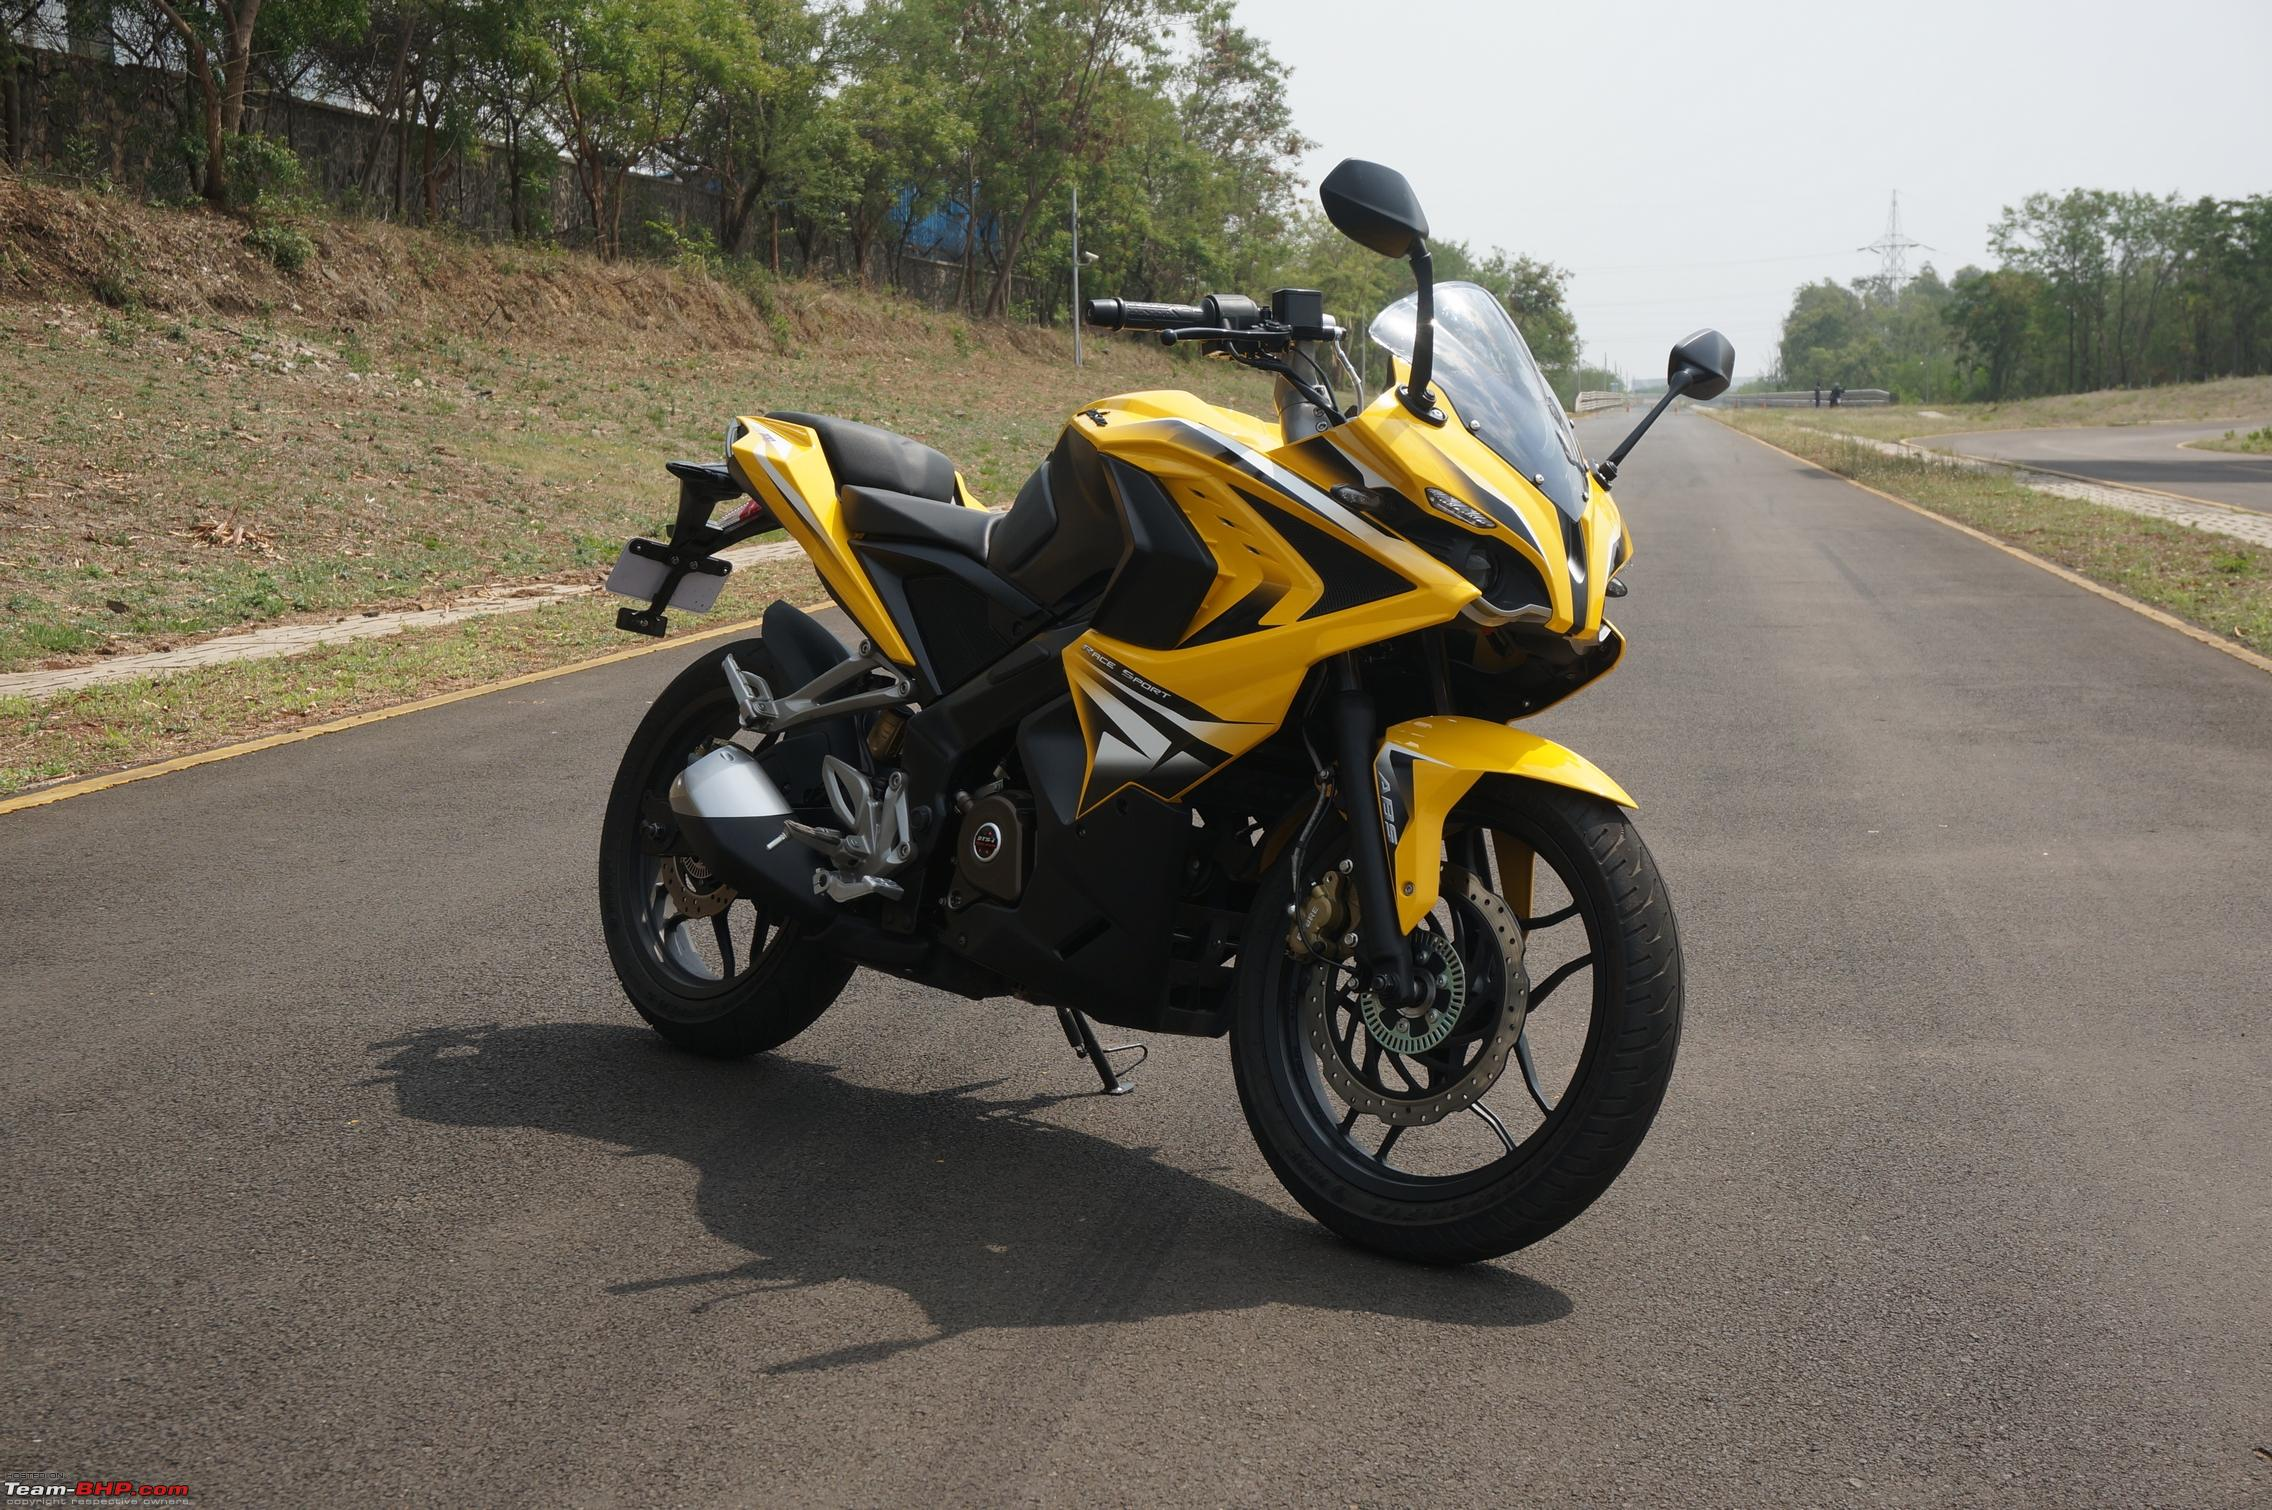 Report, Pics & Video: Bajaj Pulsar RS200 ridden at the factory test-track - Team-BHP